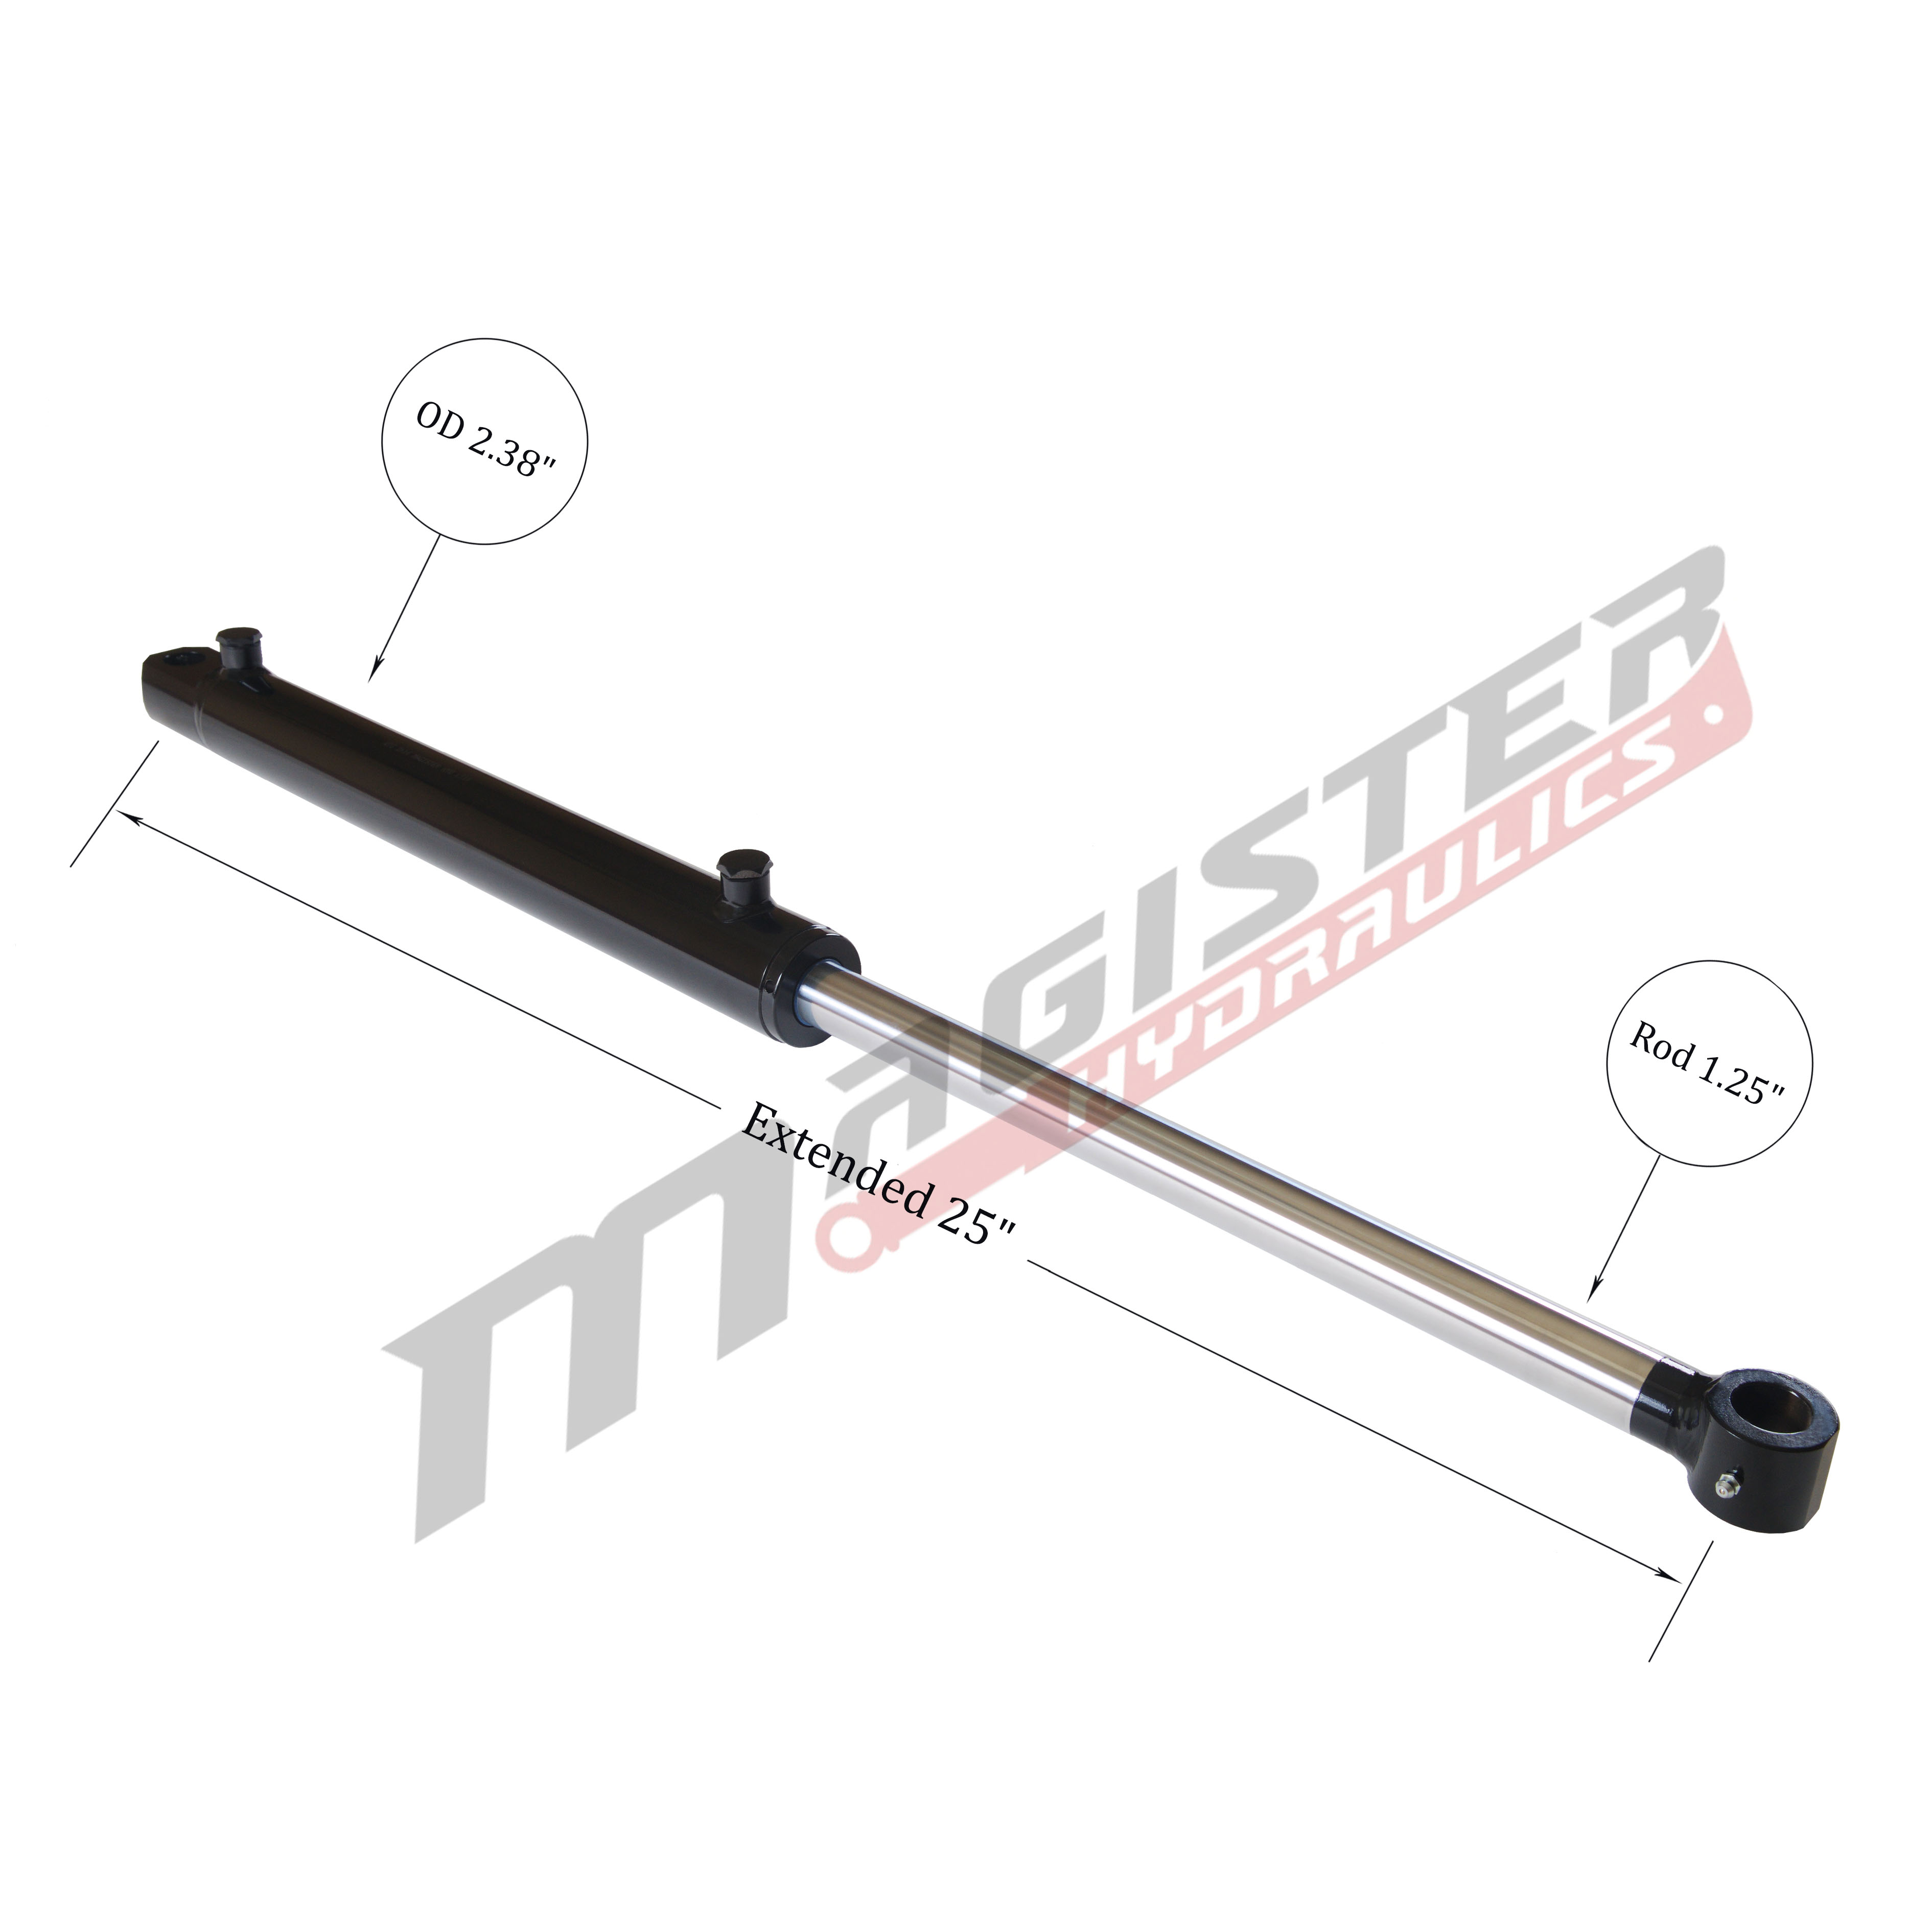 2 bore x 8 stroke hydraulic cylinder, welded tang double acting cylinder | Magister Hydraulics